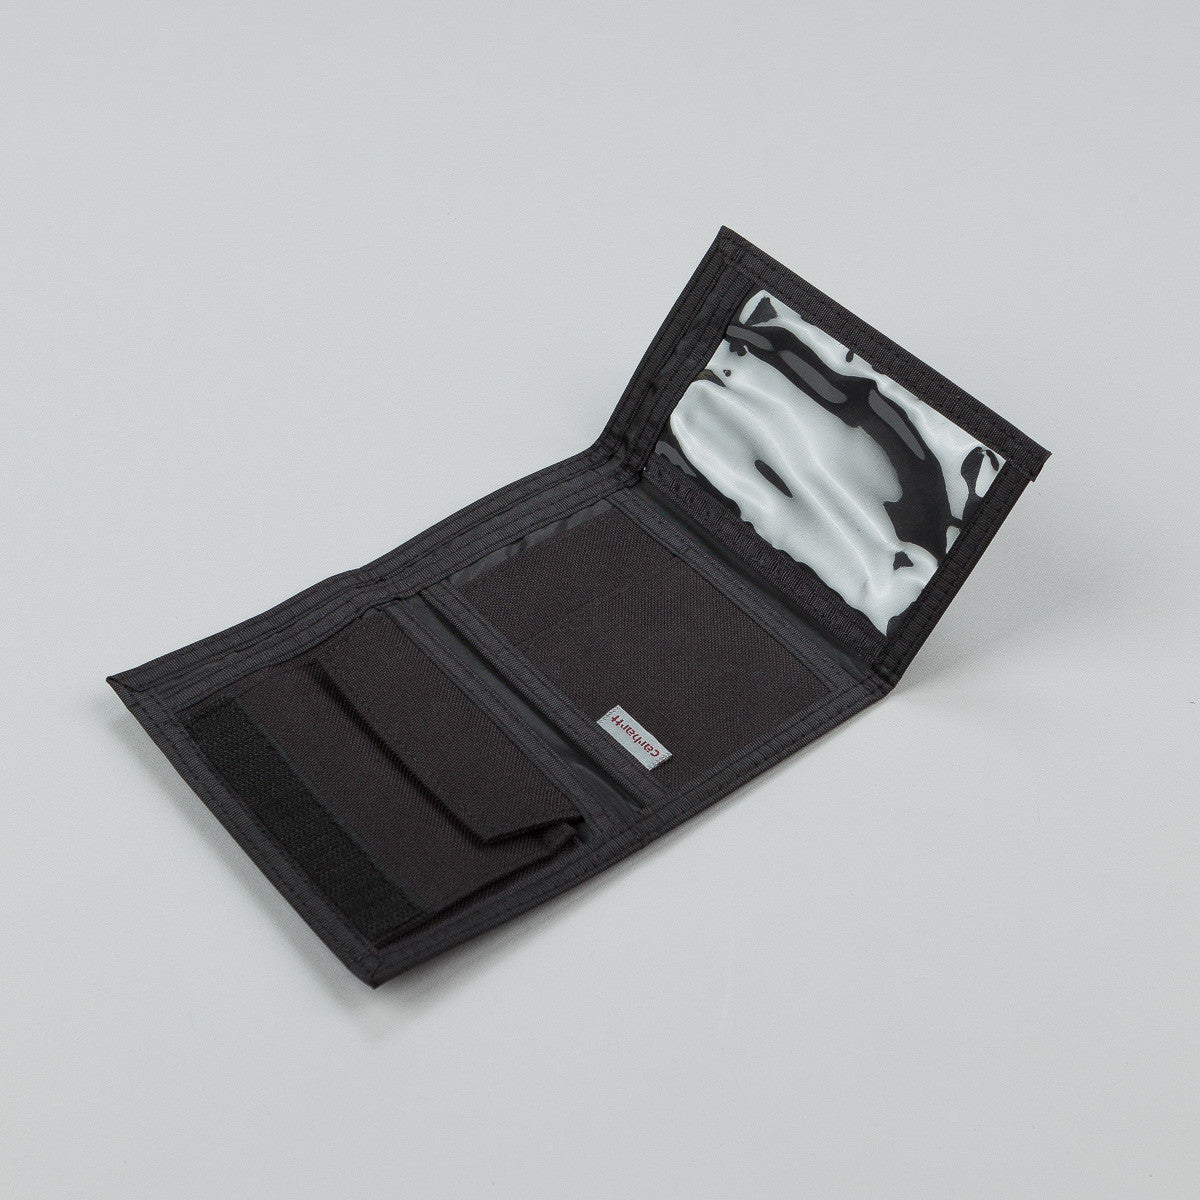 Carhartt Wallet - Black